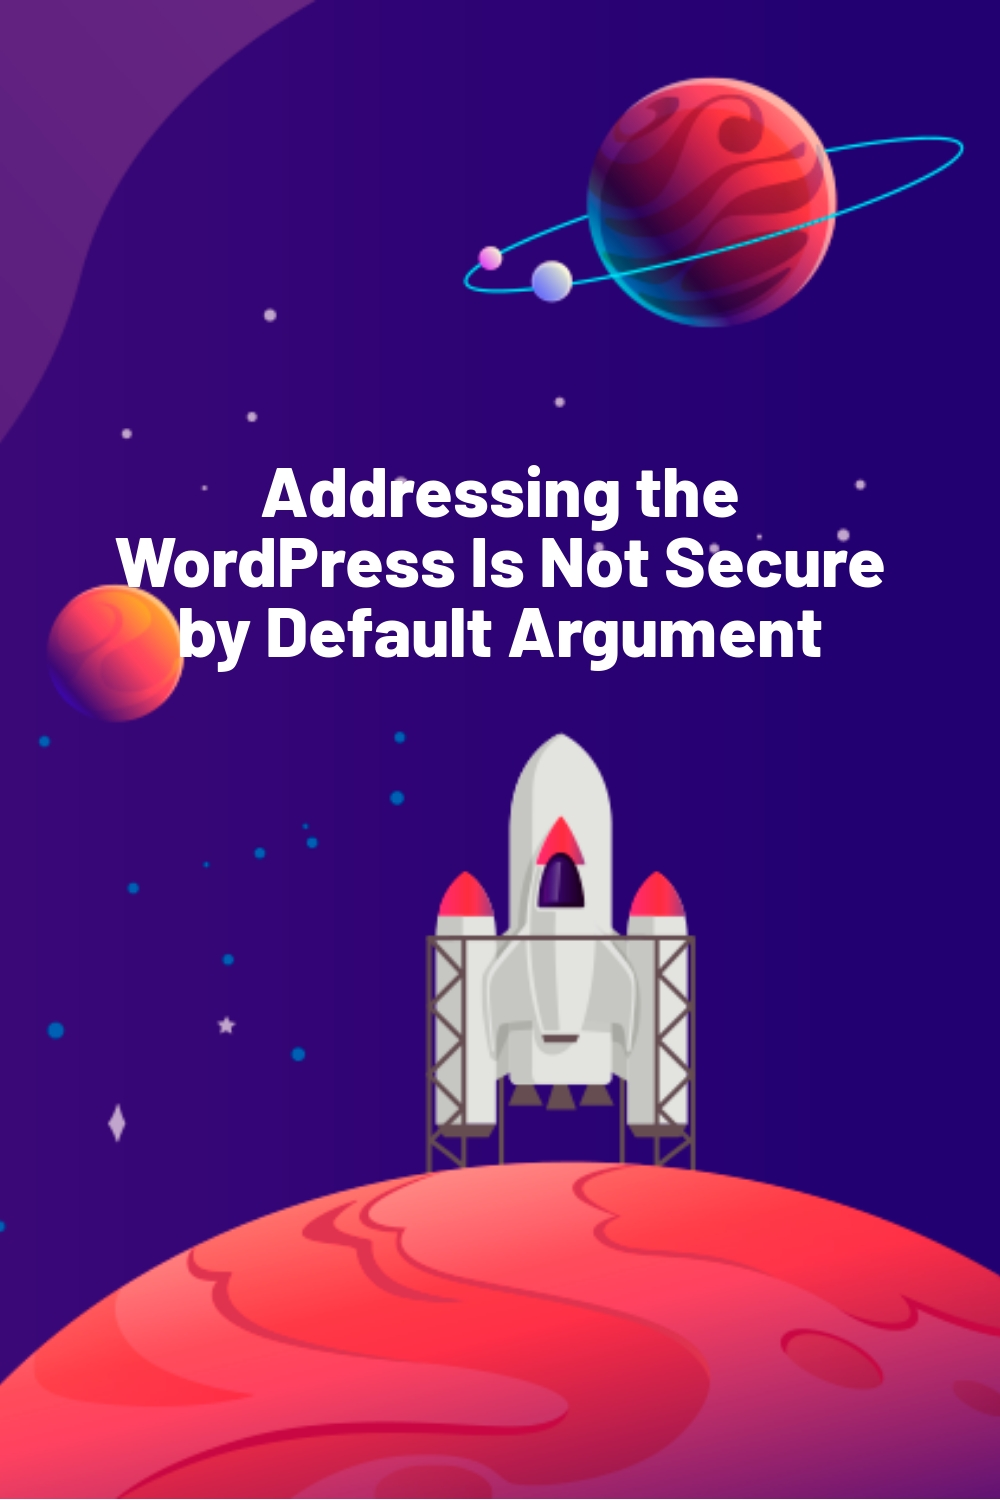 Addressing the WordPress Is Not Secure by Default Argument